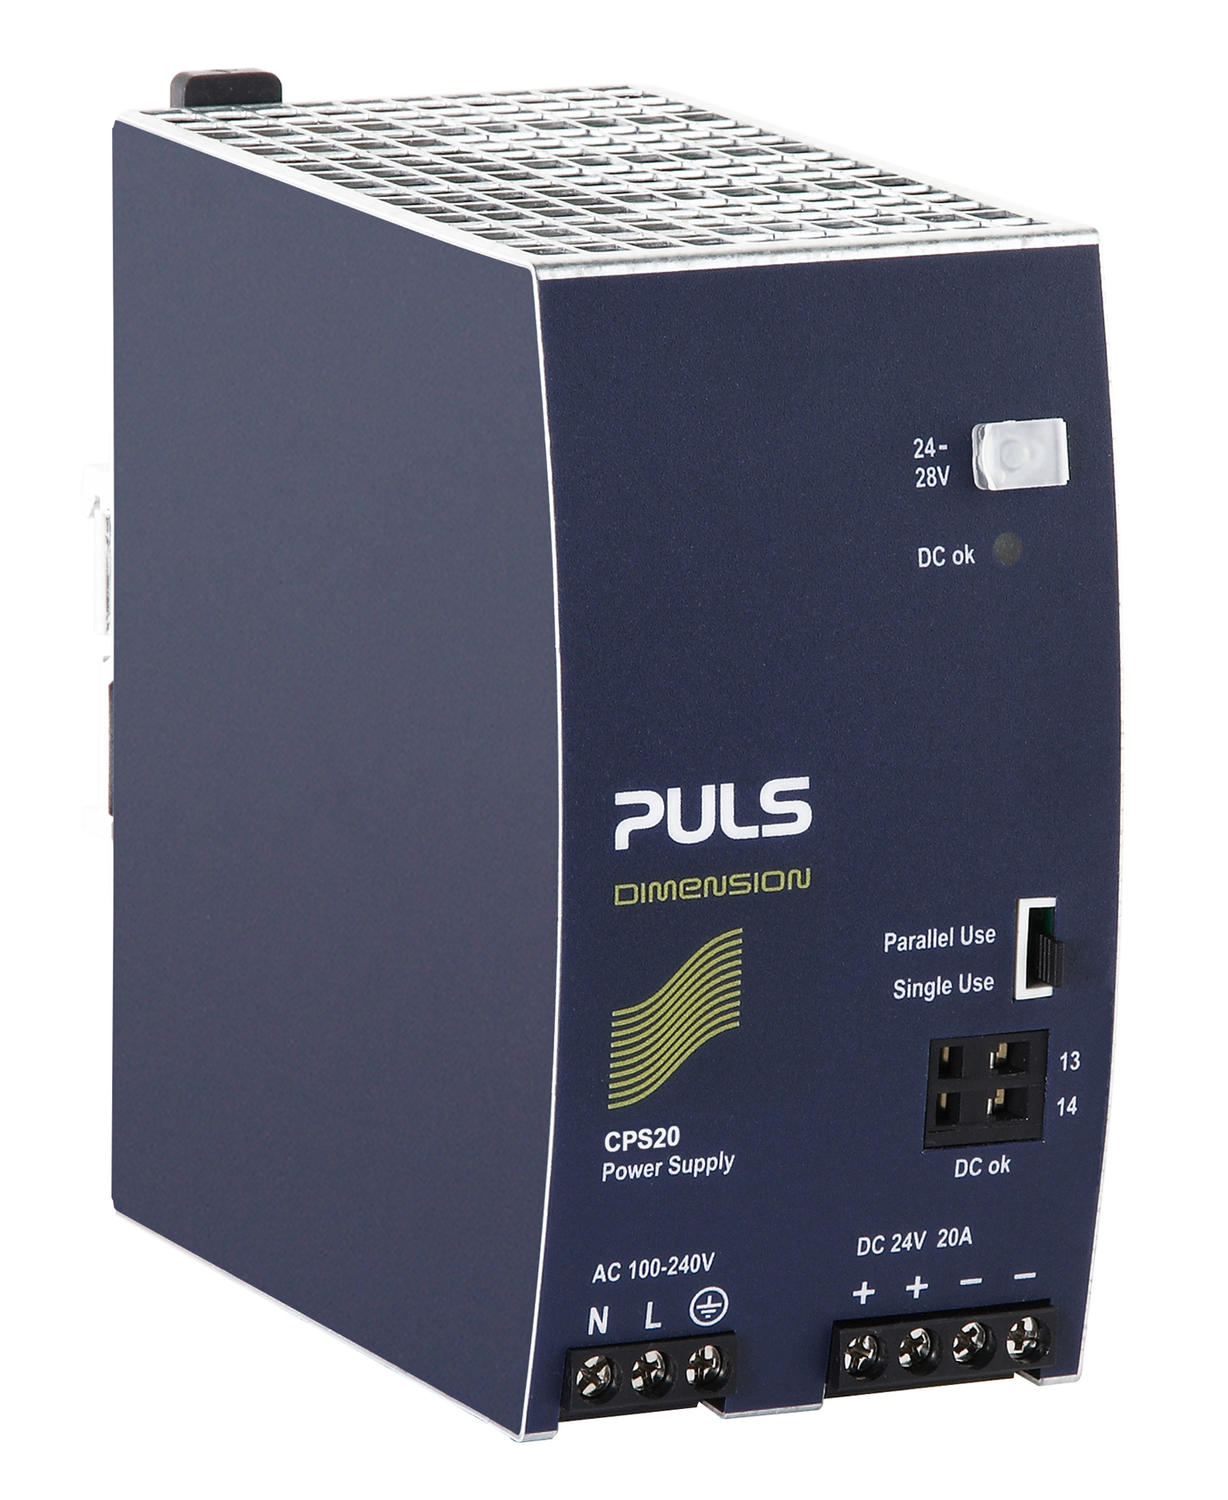 Power supply 1-phase, 12 V dc Dimension C Series